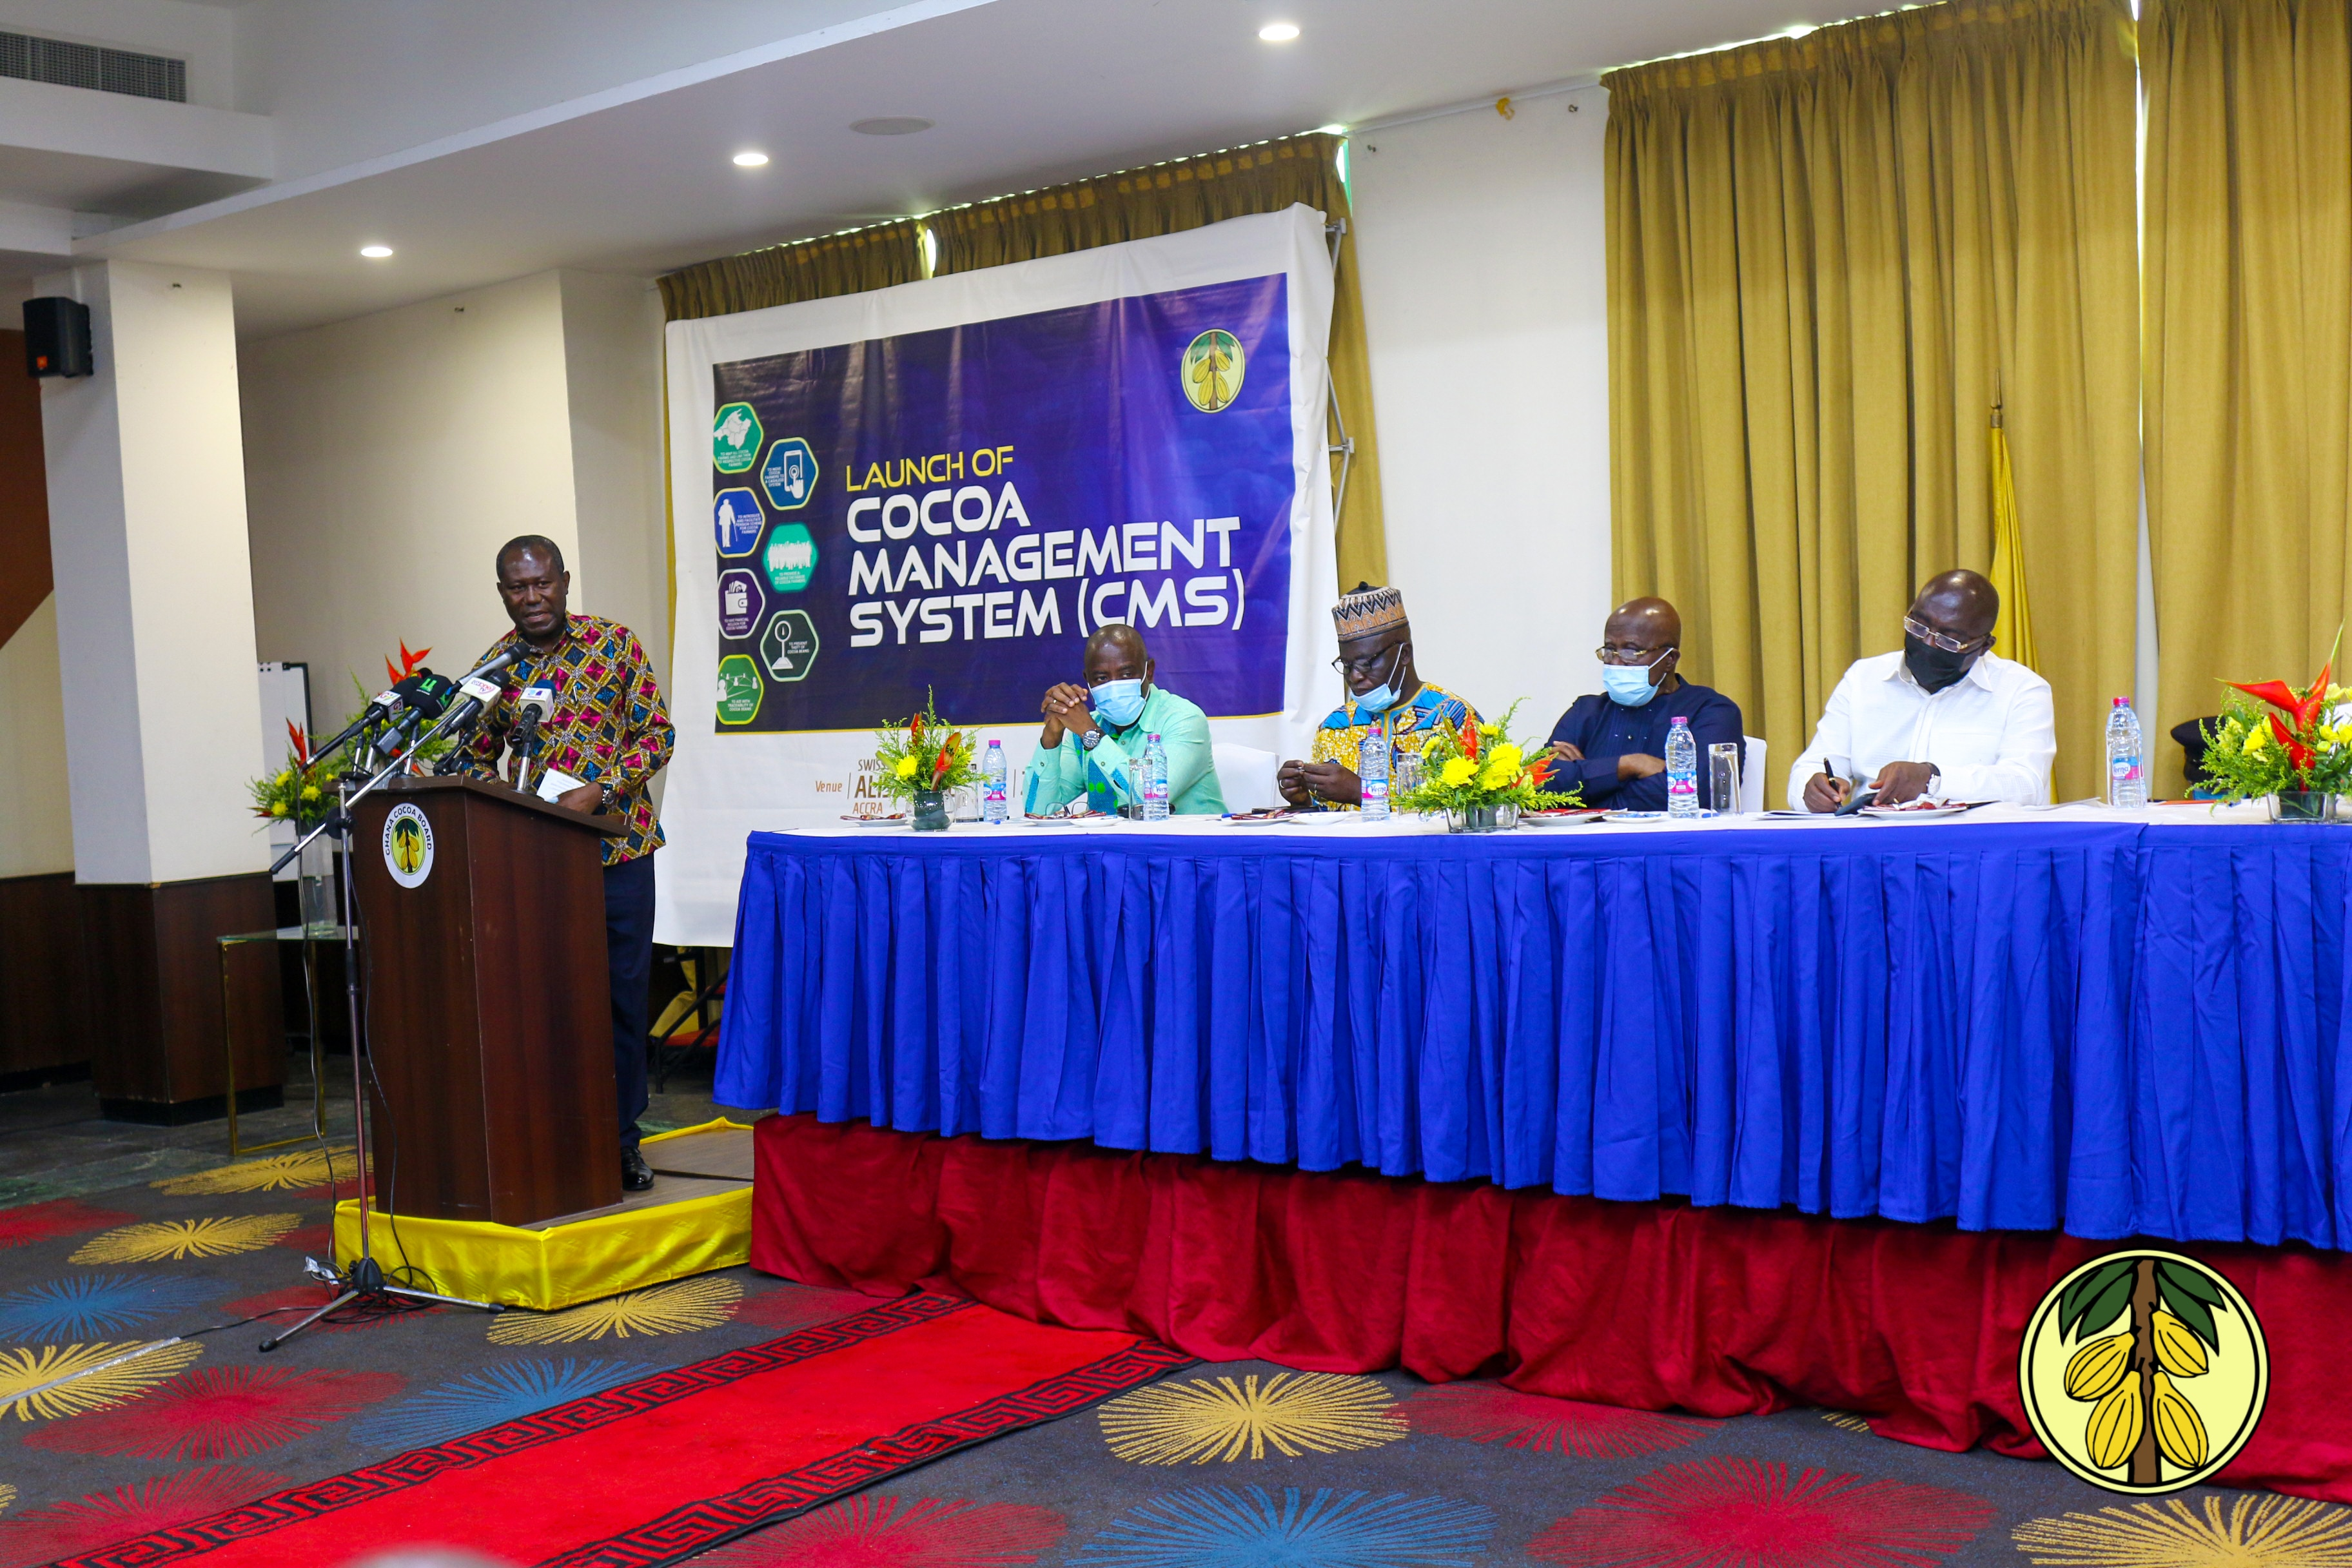 LAUNCHING OF COCOA MANAGEMENT SYSTEM